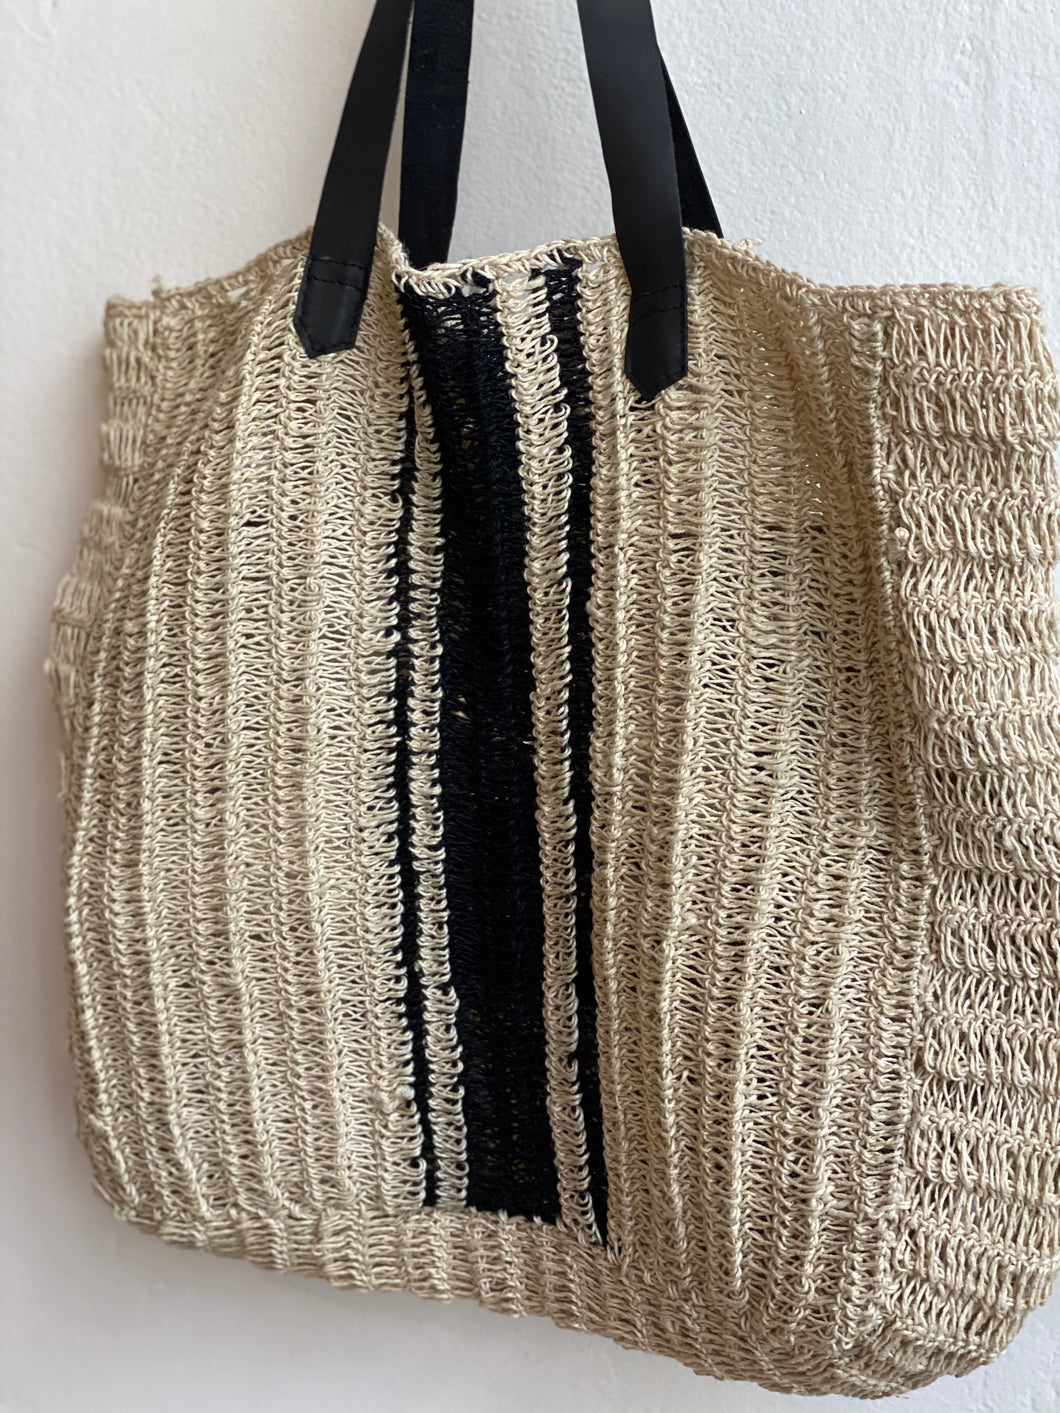 natural/black stripe tote bag